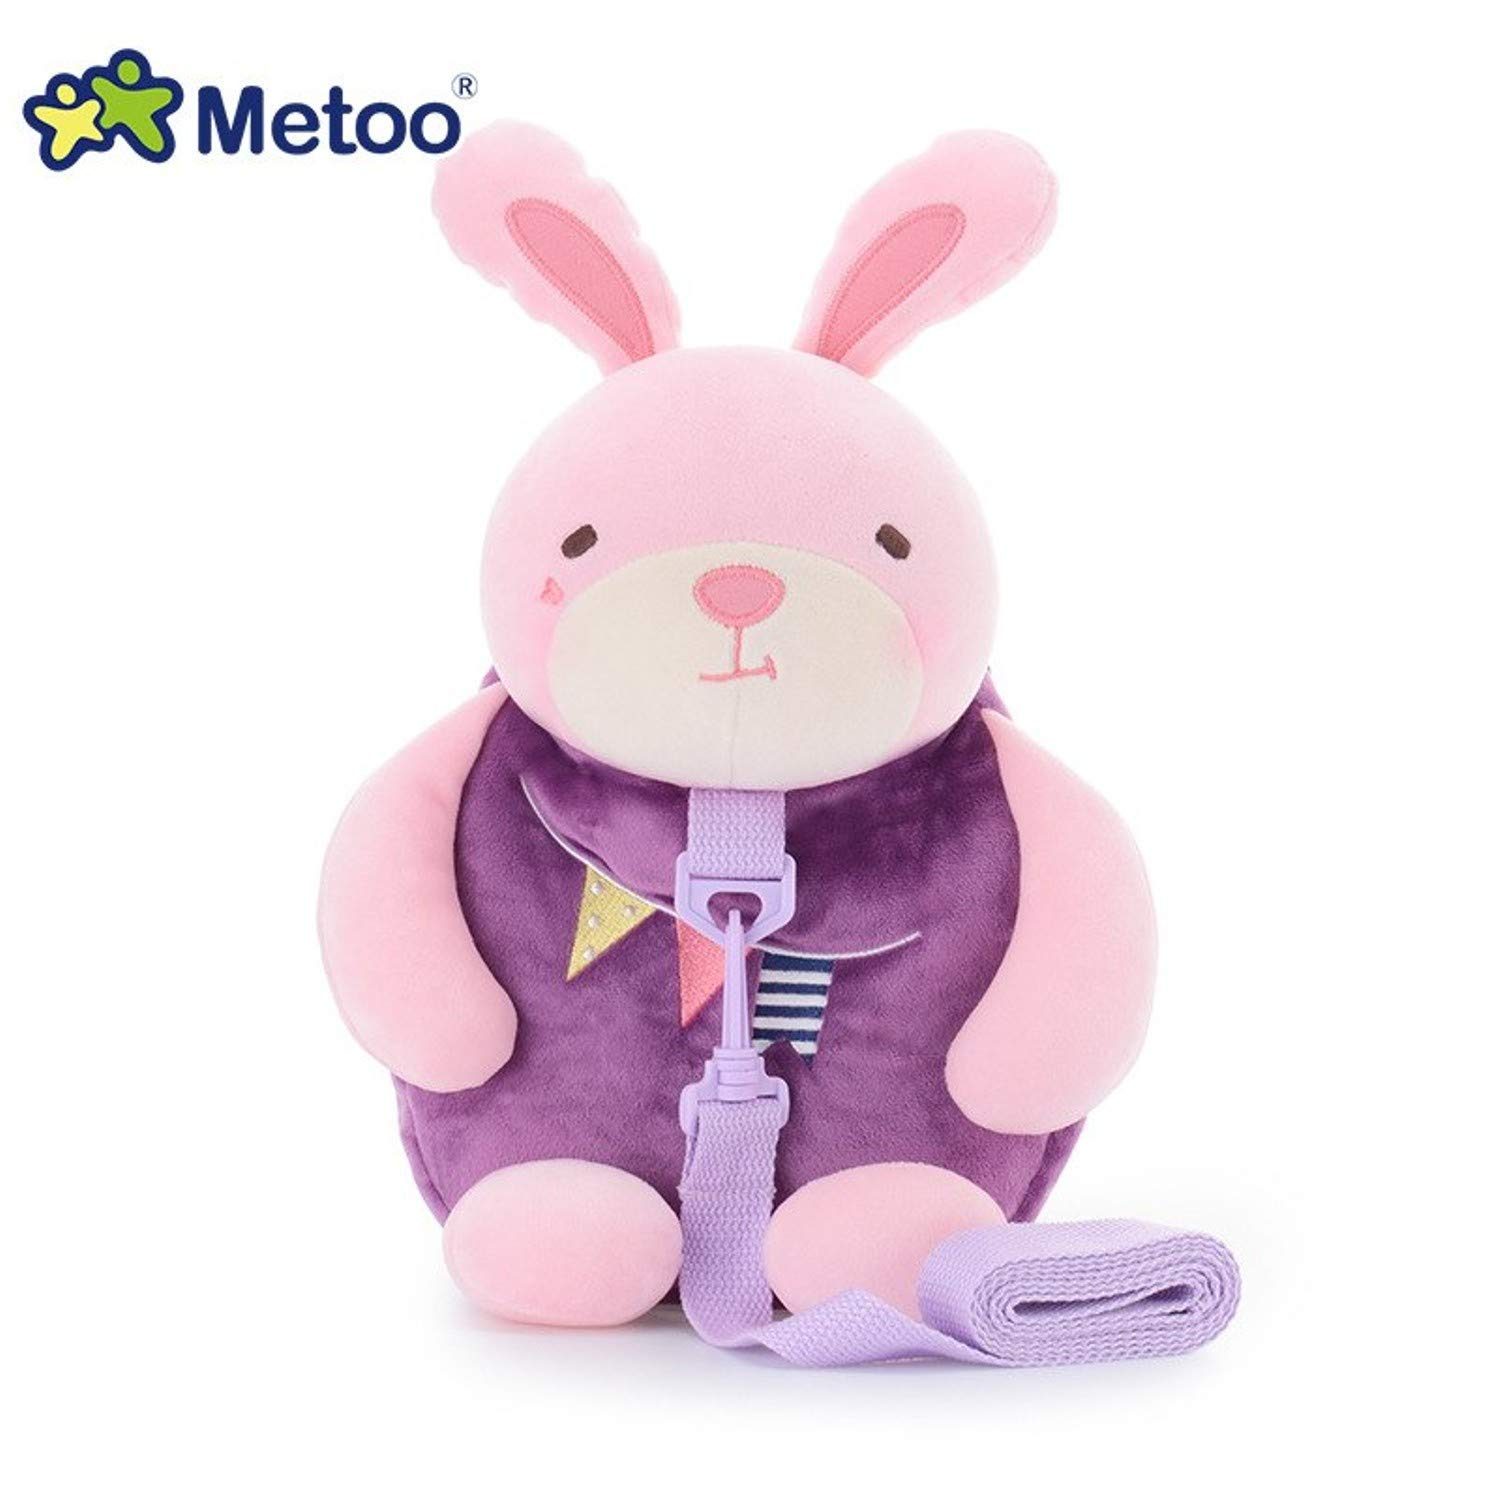 Amazon.com: Jewh Traction Package Plush Bags Kawaii Toy for Children Shoulder Bag for Kindergarten Girl MeToo Backpack Doll Kids Toys (2): Toys & Games